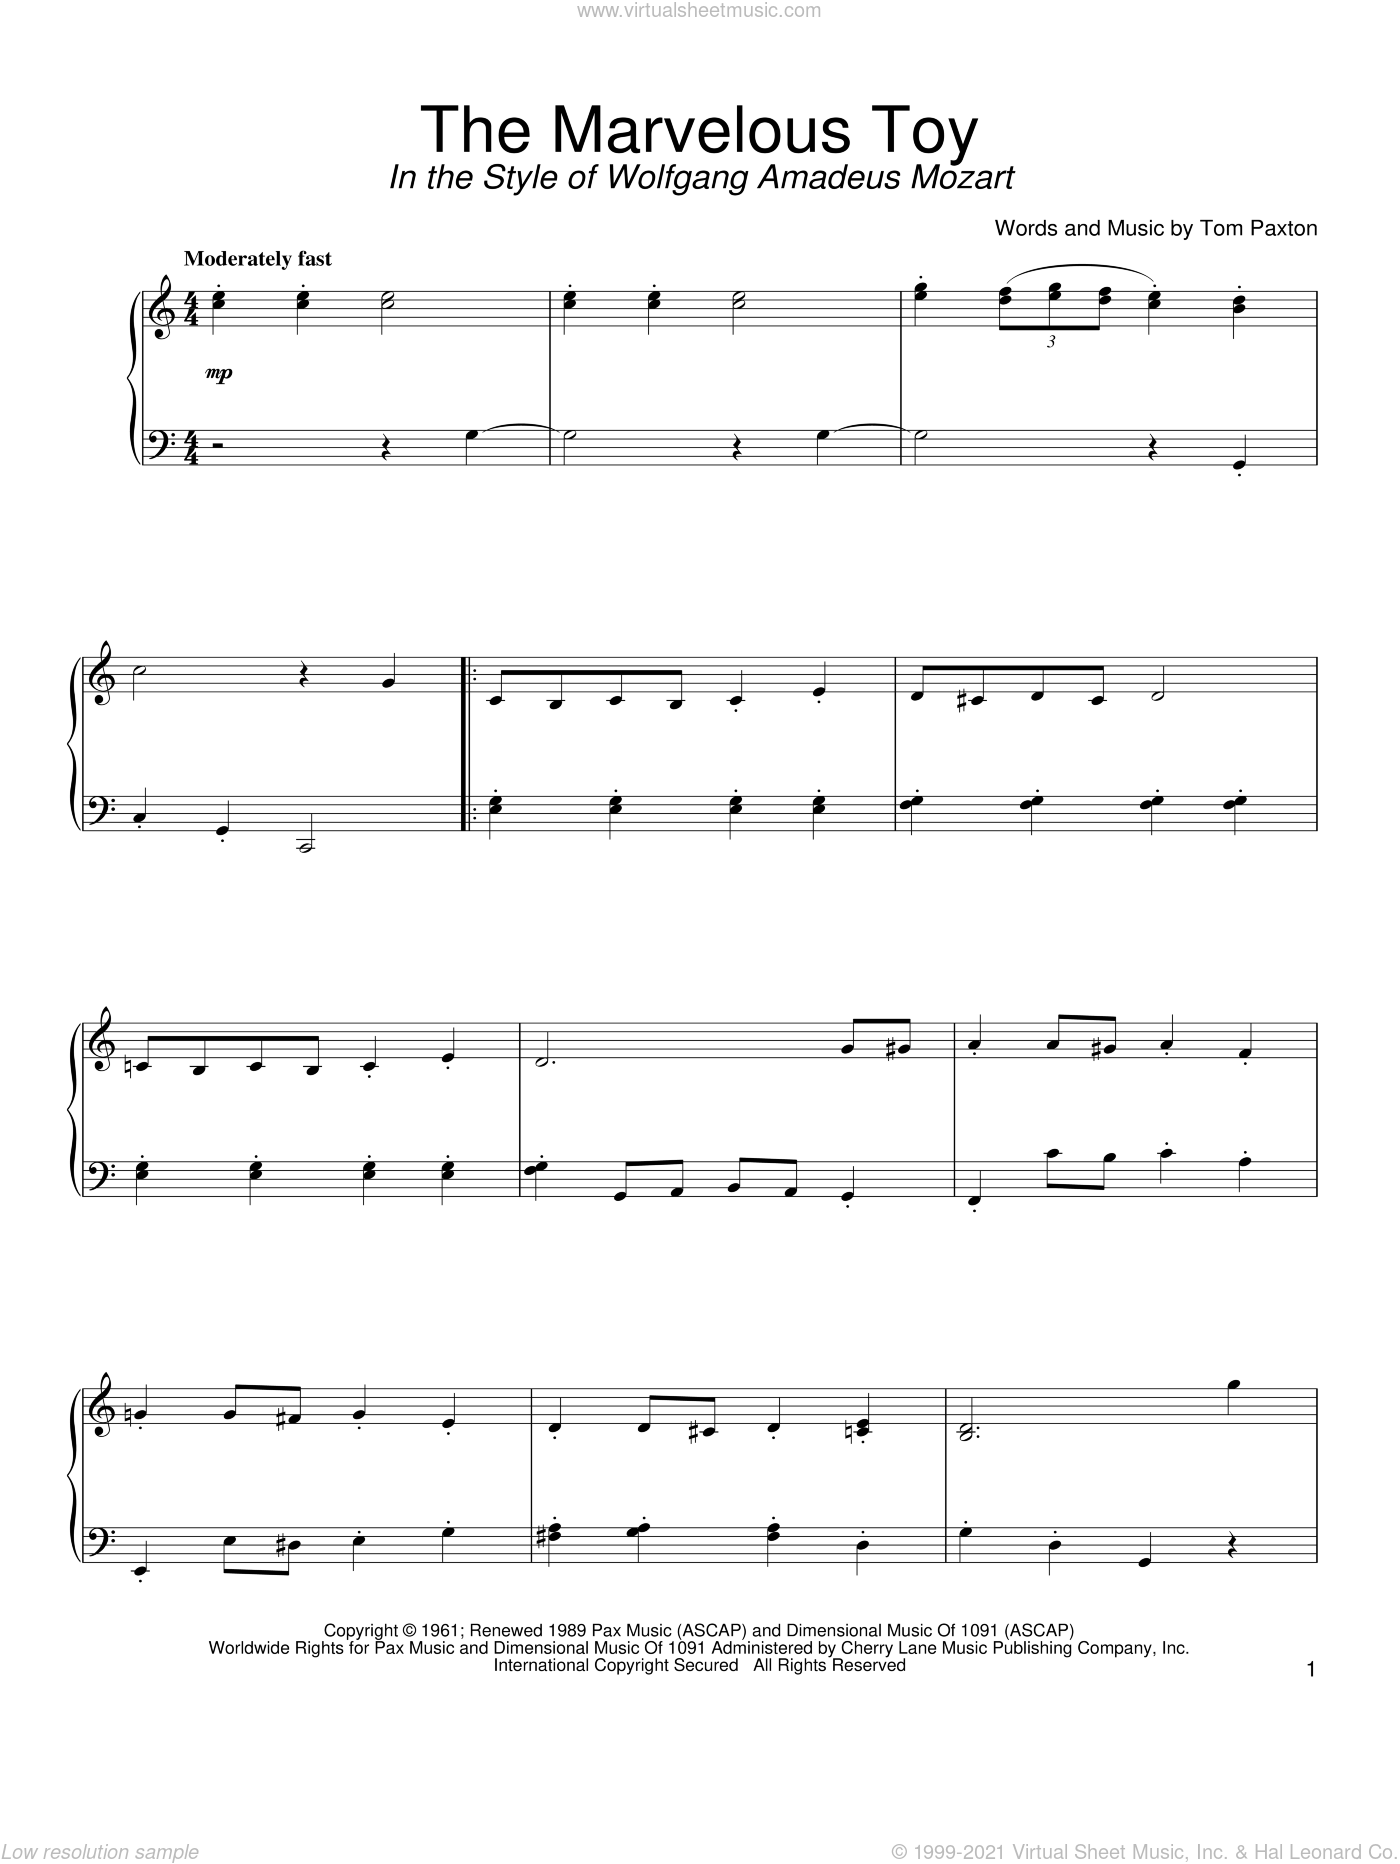 The Marvelous Toy sheet music for piano solo by Tom Paxton